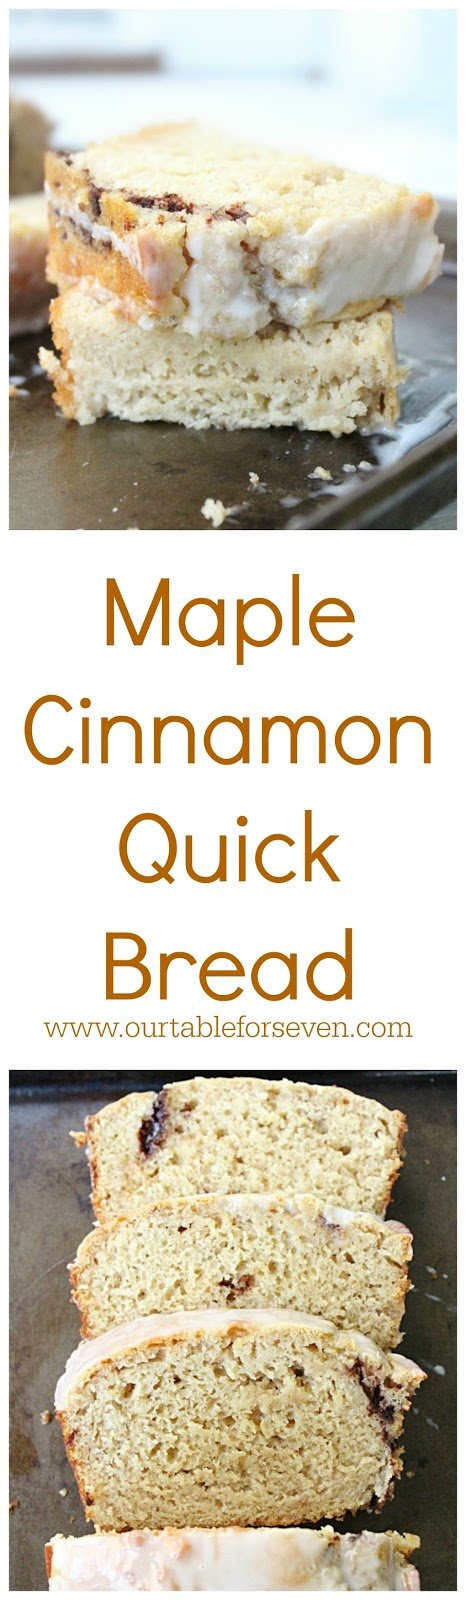 Maple Cinnamon Quick Bread from Table for Seven